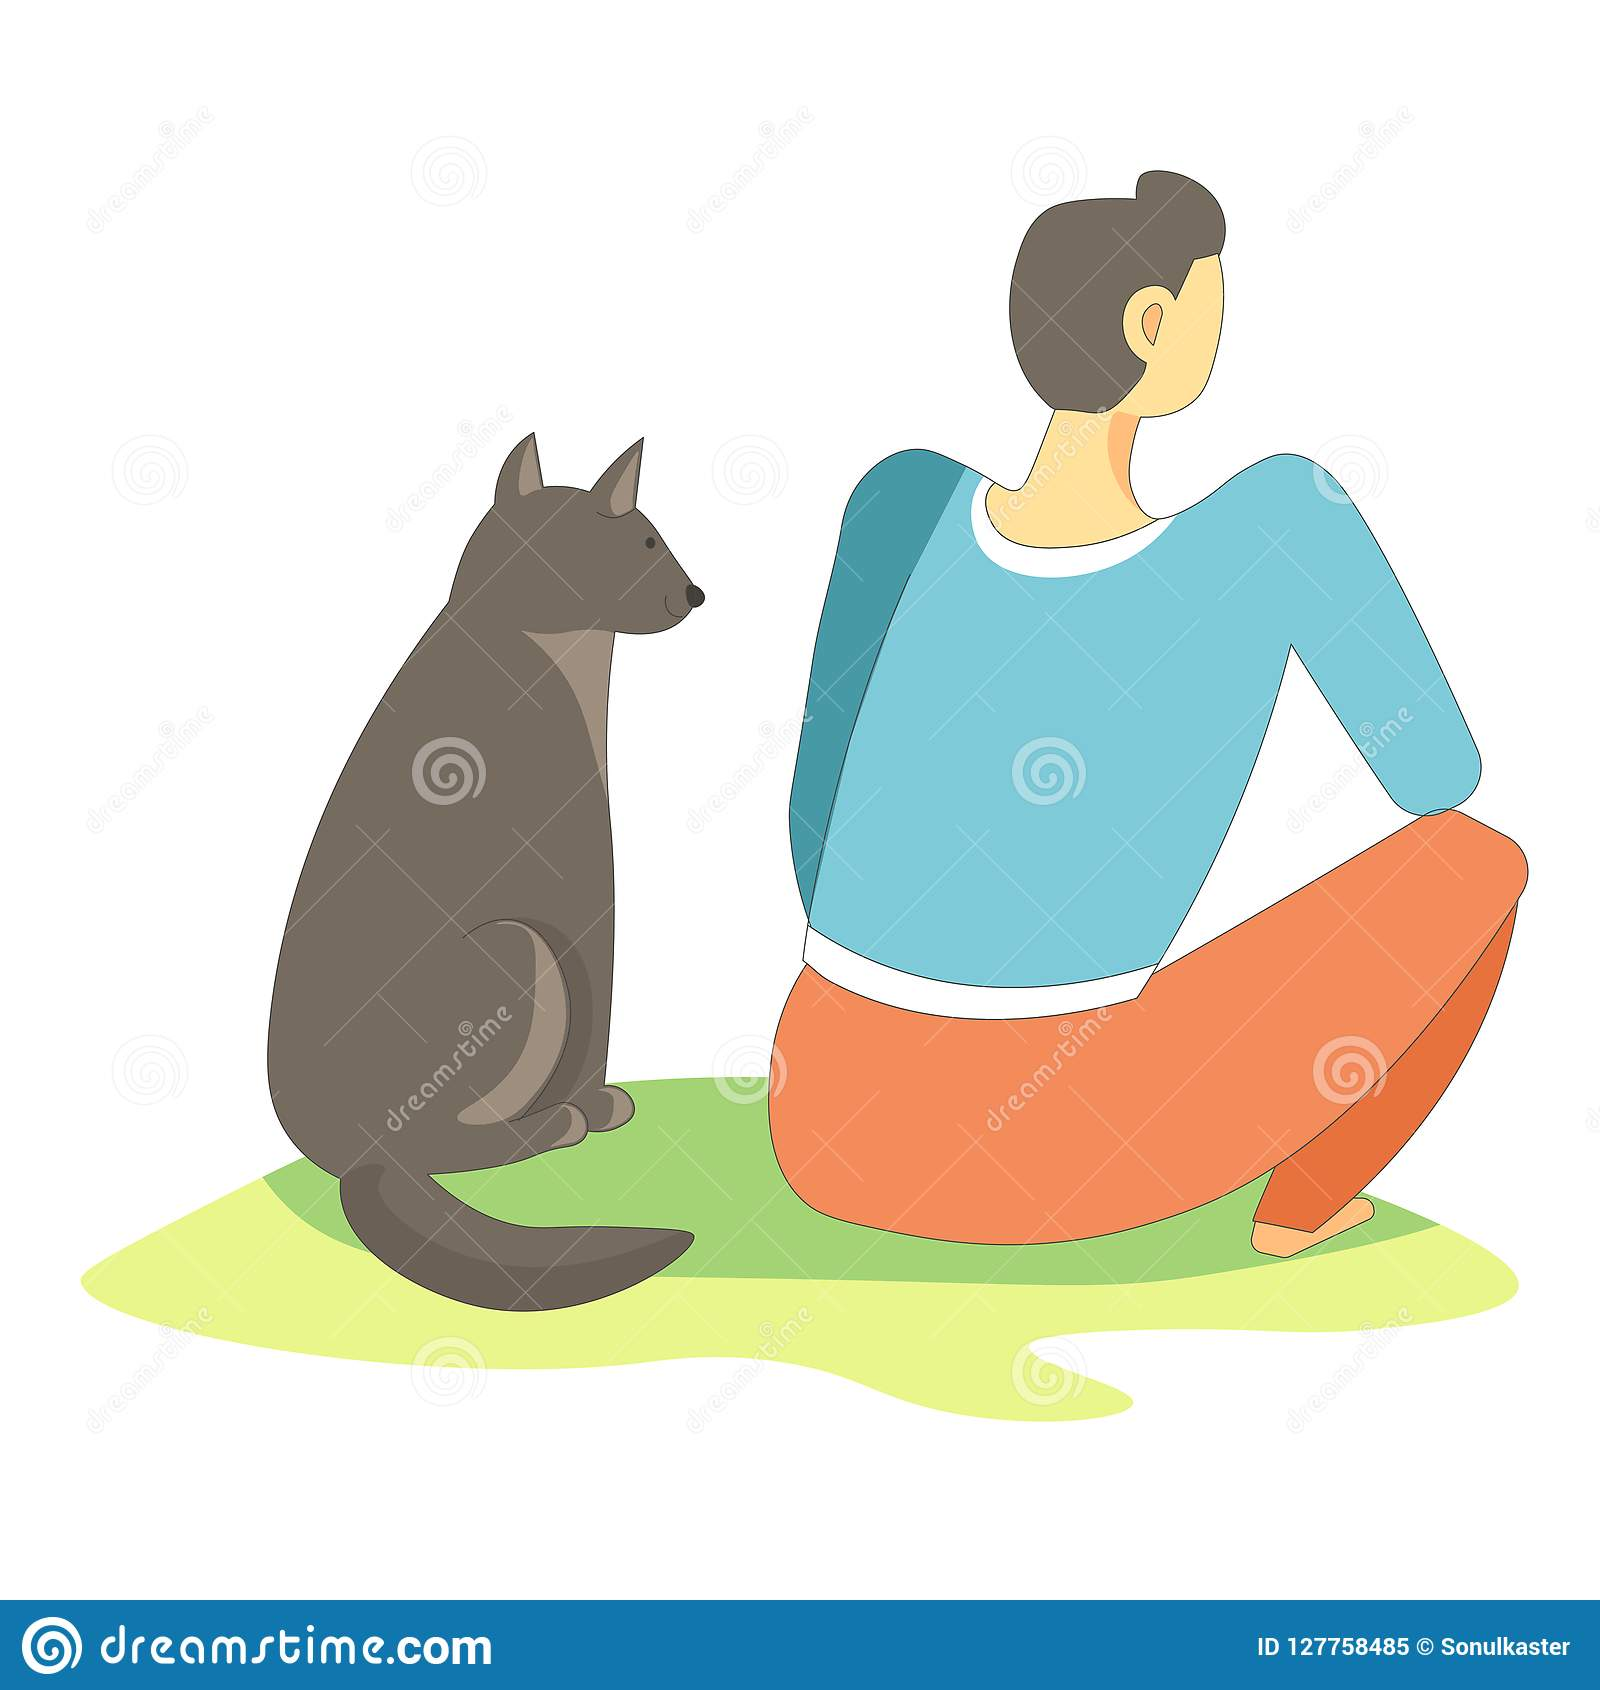 Dog pet sitting with owner full in thoughts vector